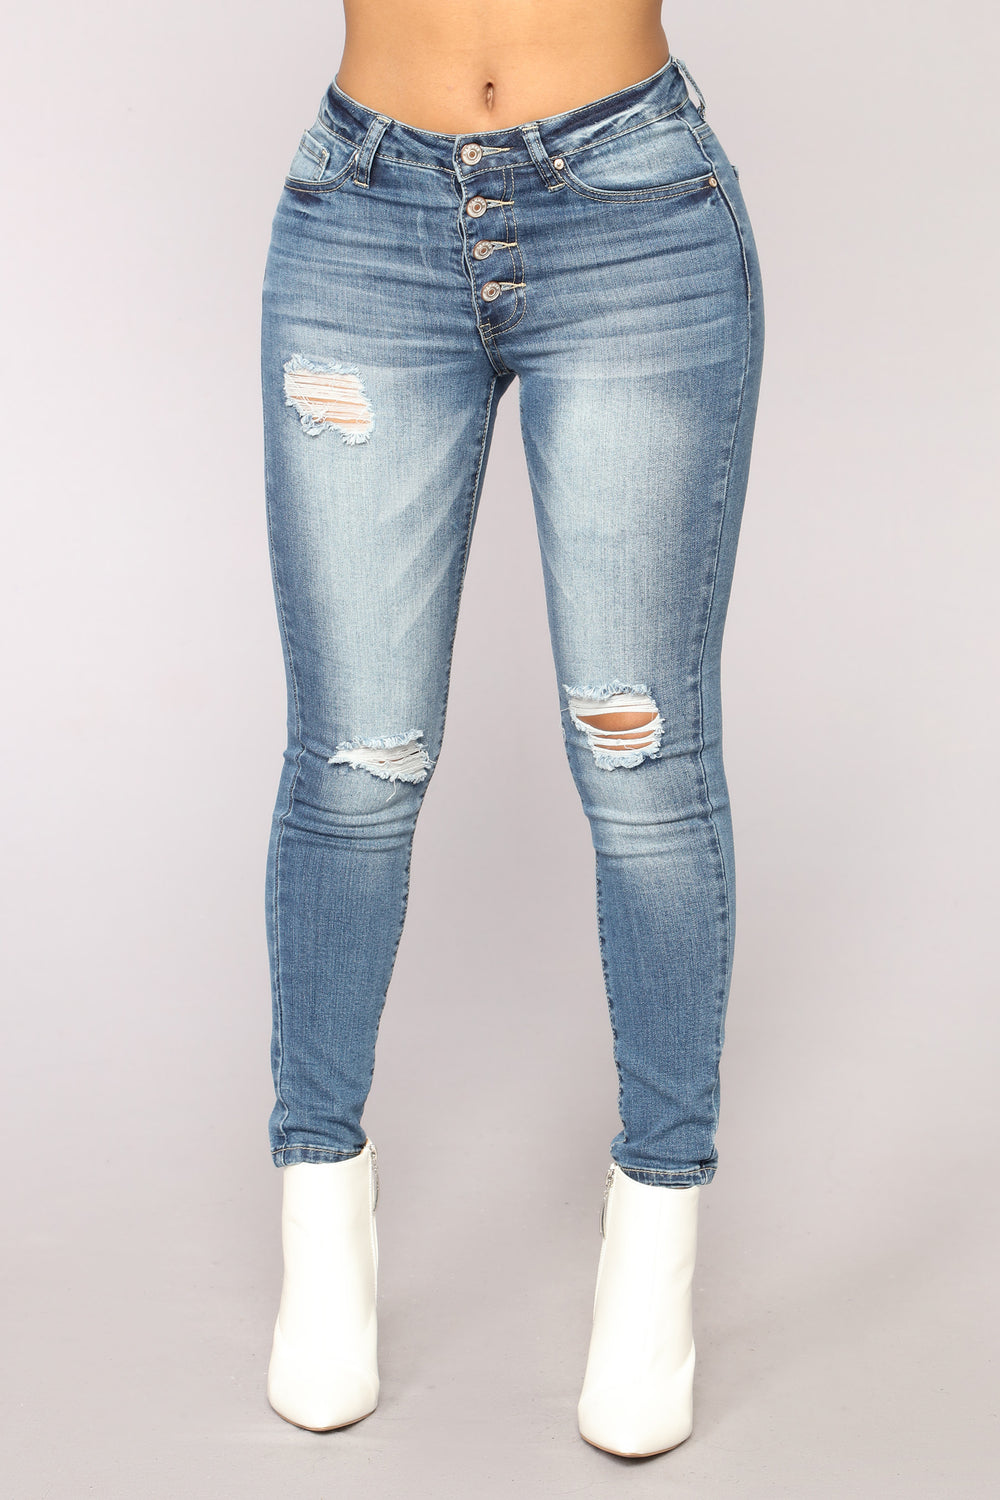 Call Me Never Ankle Jeans - Medium Blue Wash